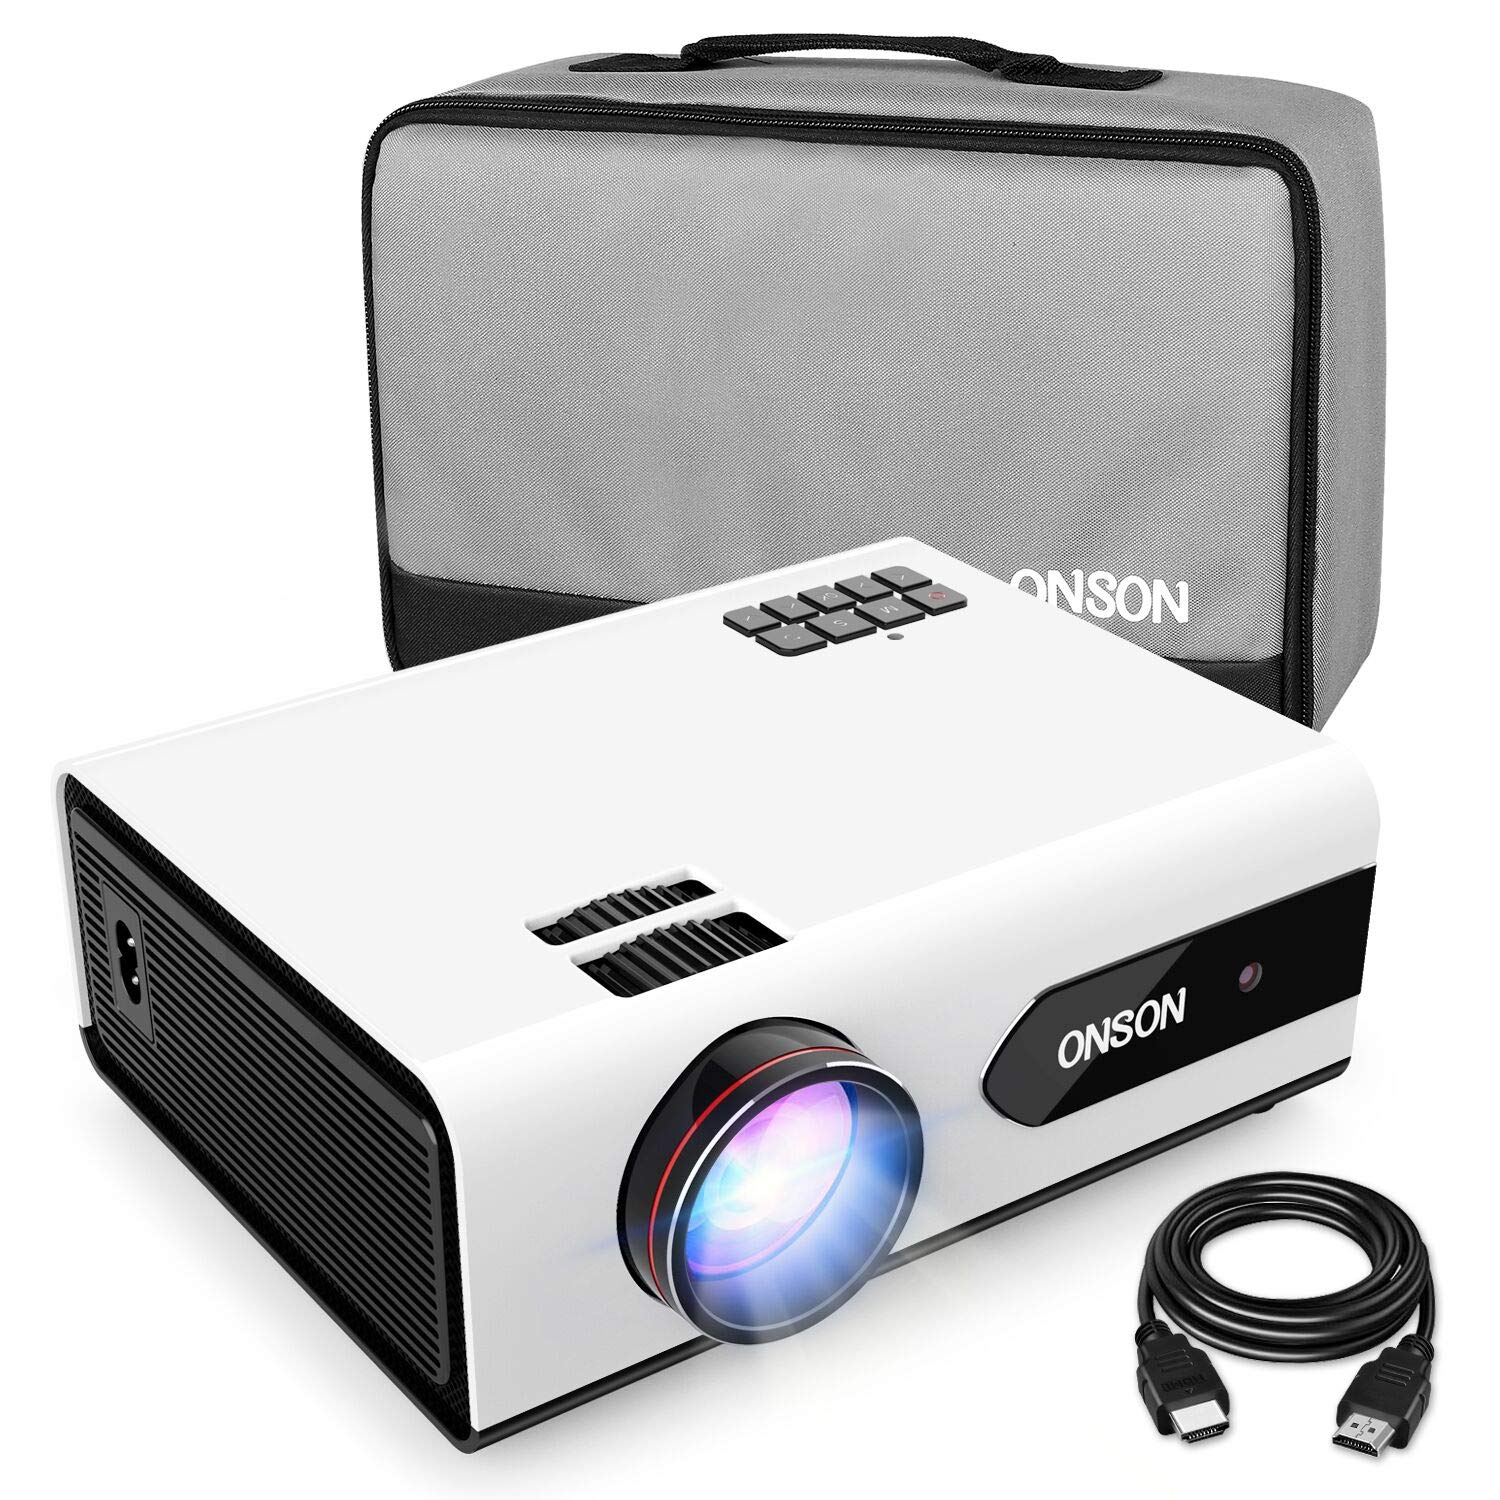 ONSON [2019 Upgrade] Mini Projector, 2800 Lux Portable Movie Projector with 50,000 Hours LED Lamp Life, Full HD 1080P Video Supported, Compatible with TV Stick, PS4, HDMI, VGA, TF/SD Card, AV and USB by ONSON